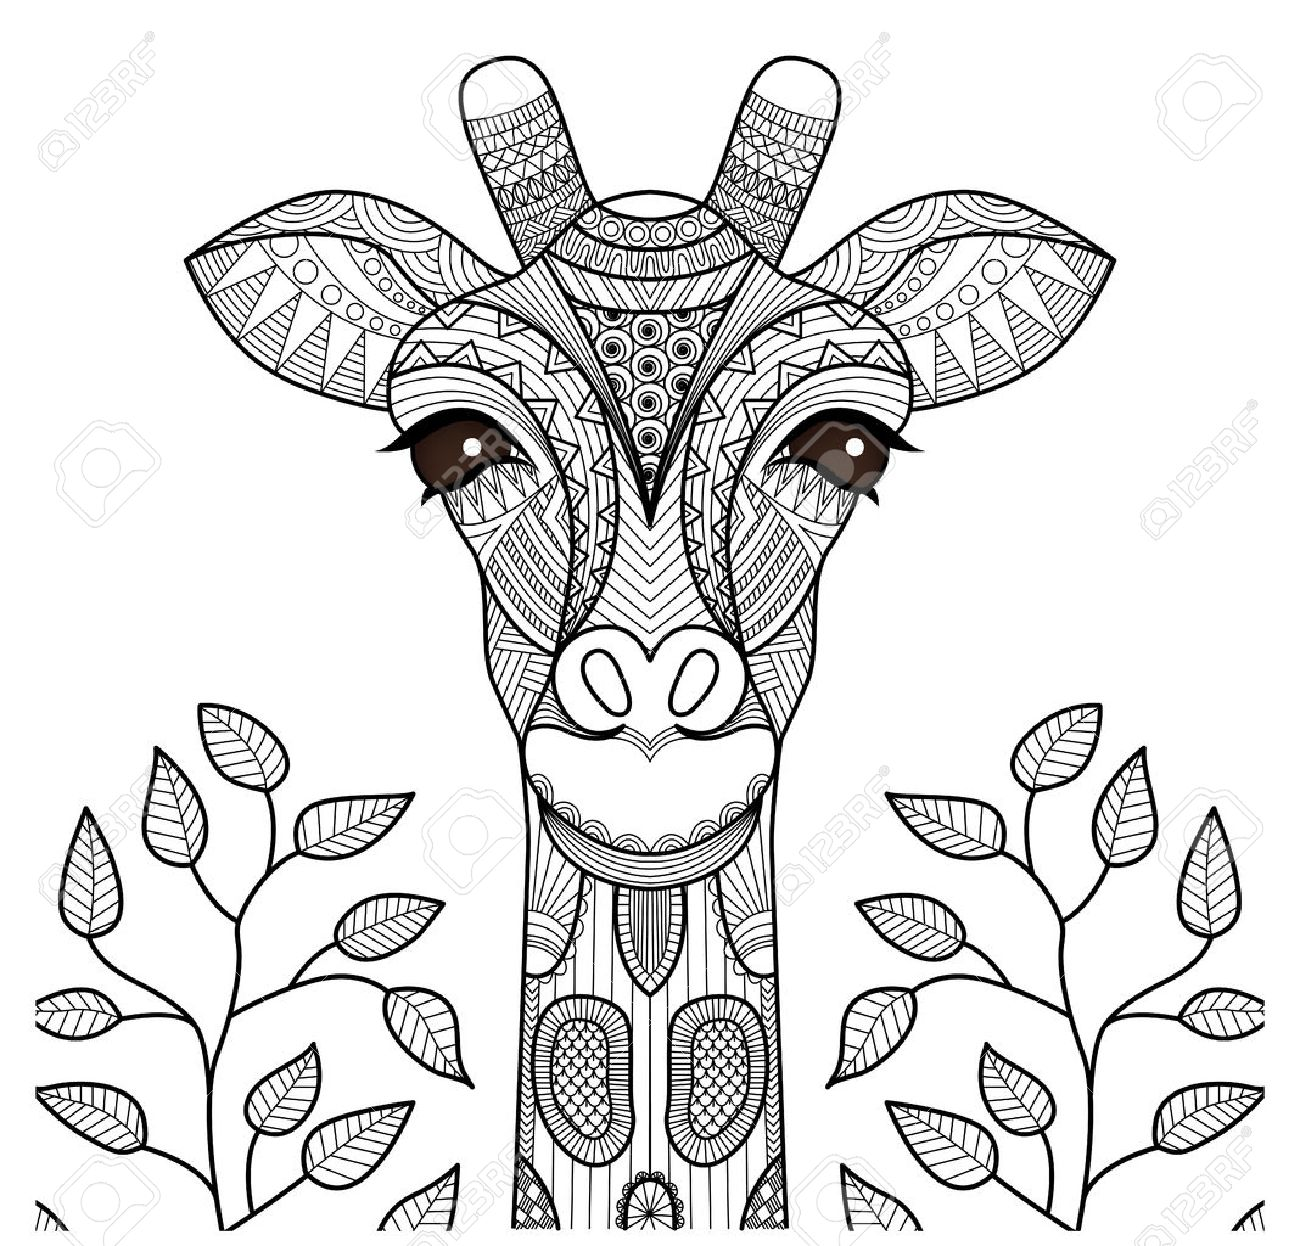 Zentangle Giraffe Head For Coloring Page, Shirt Design And So ...